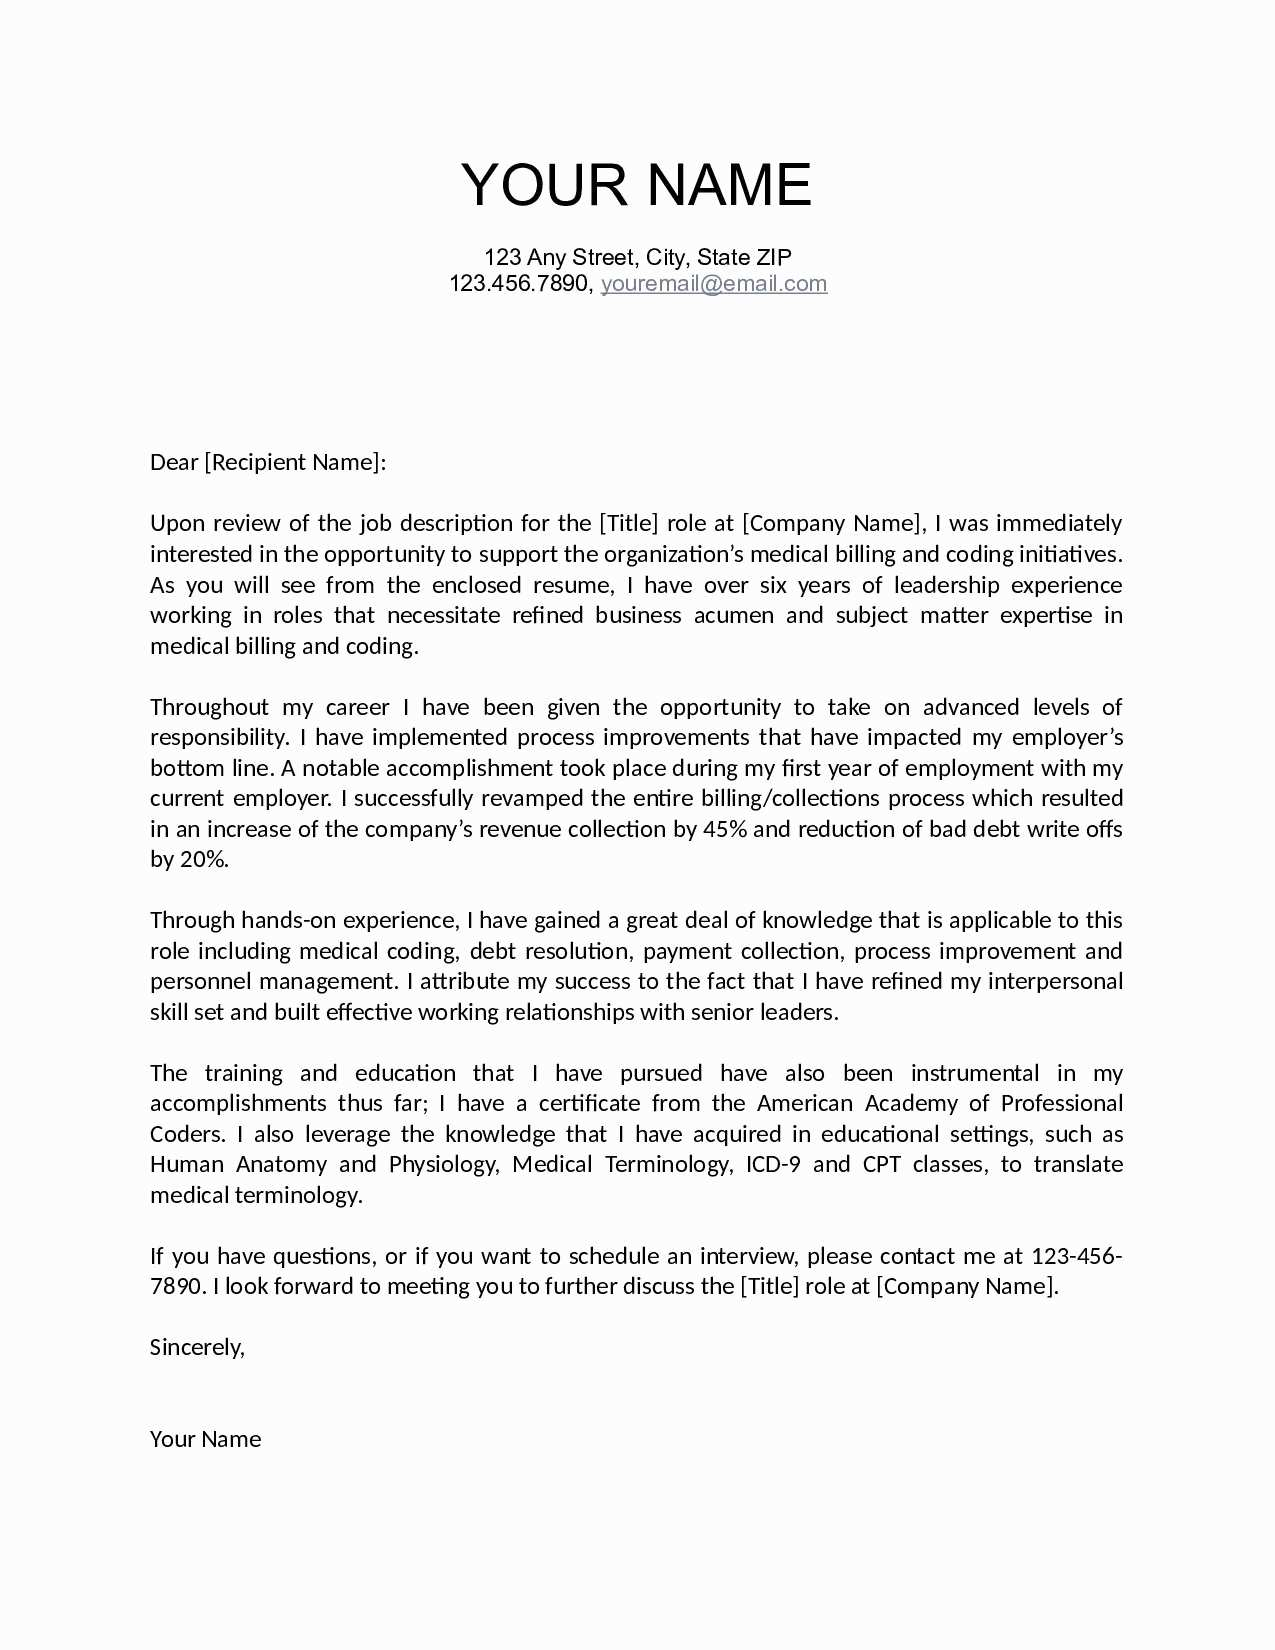 no show fee letter template example-Sample Cover Letter Template Awesome Fee Schedule Template Unique Cover Letter Template for A Job Copy 17-a